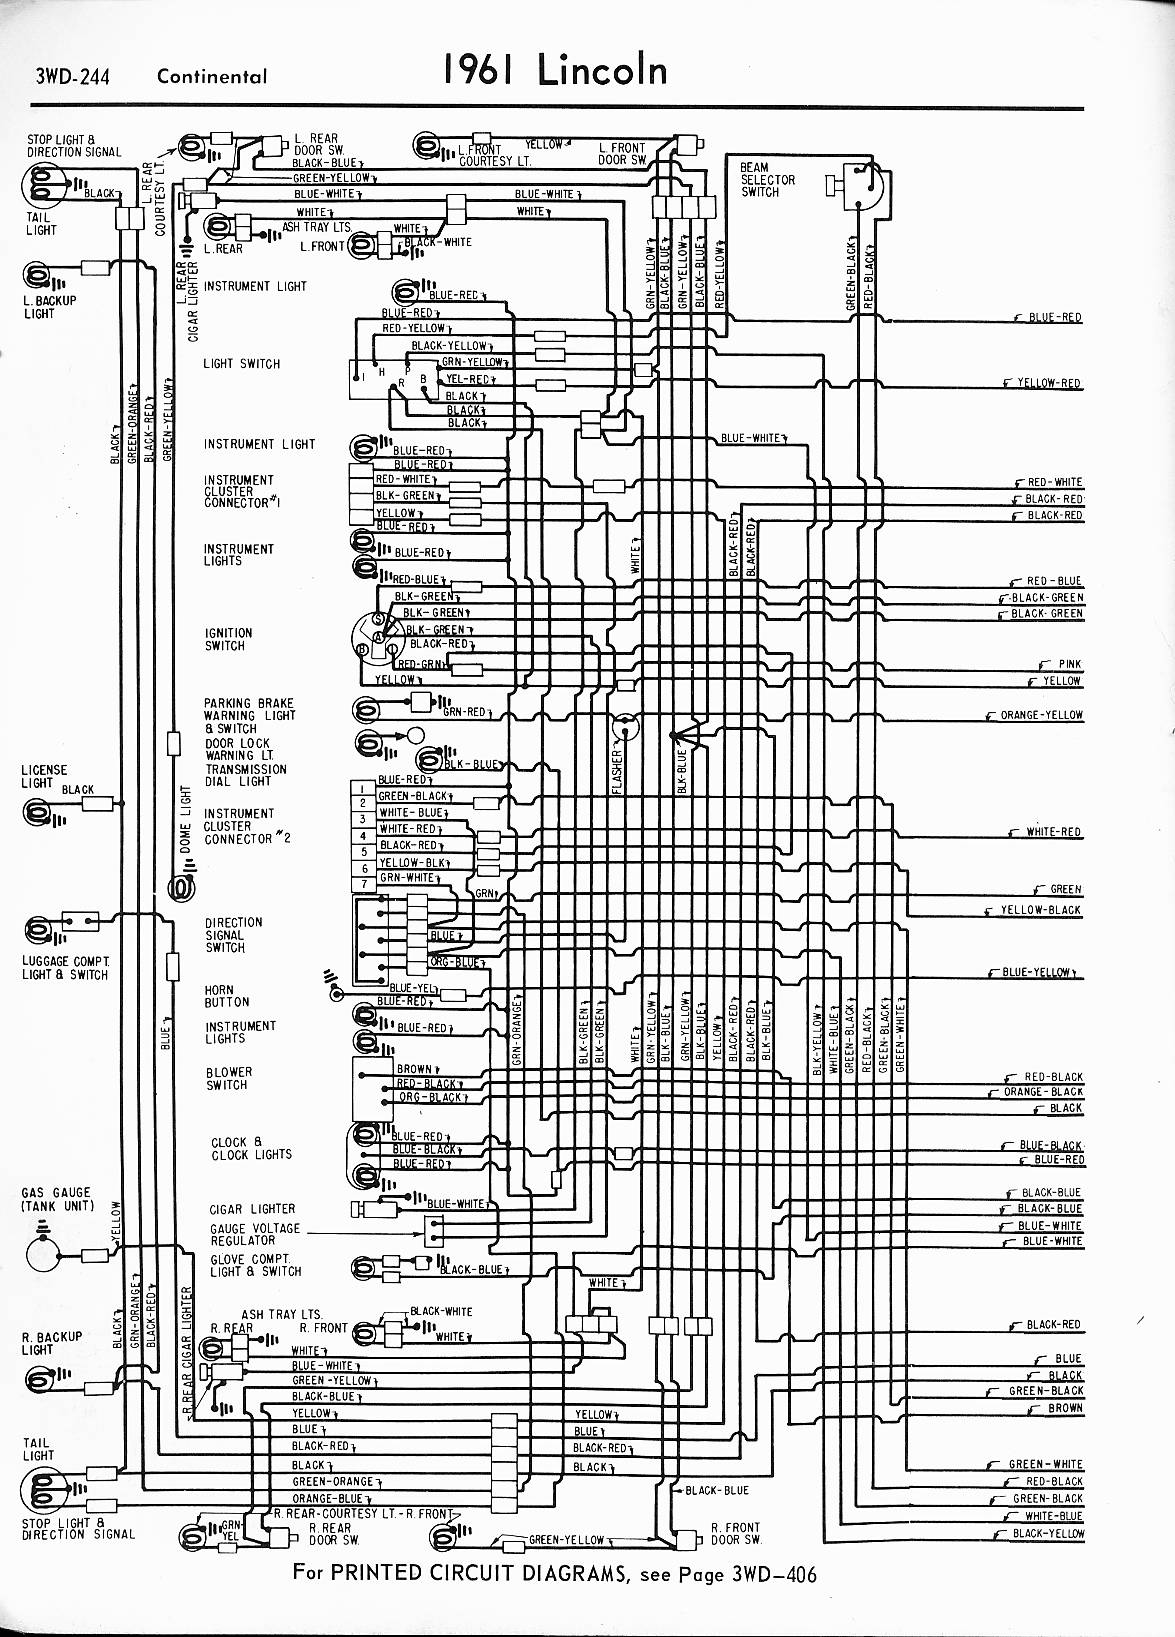 lincoln wiring diagrams: 1957 - 1965 lincoln continental convertible top wiring diagram  the old car manual project